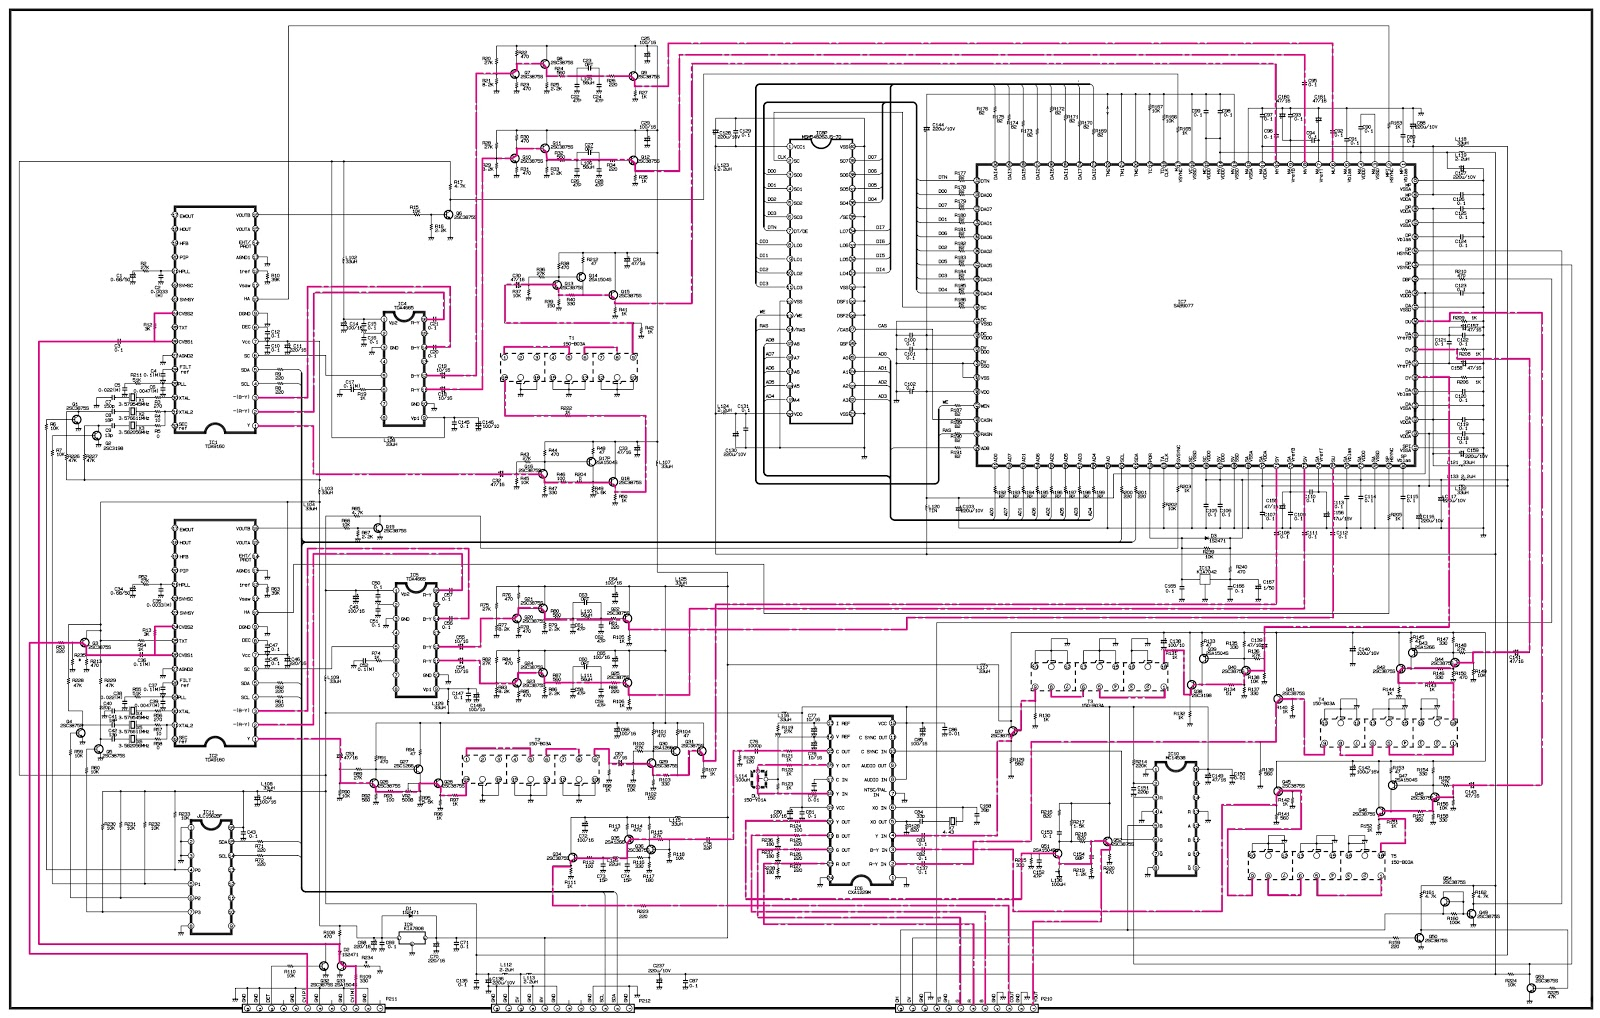 small resolution of pip and vcr wiring diagram wiring diagram jvc car stereo wiring diagram jvc vcr wiring diagram